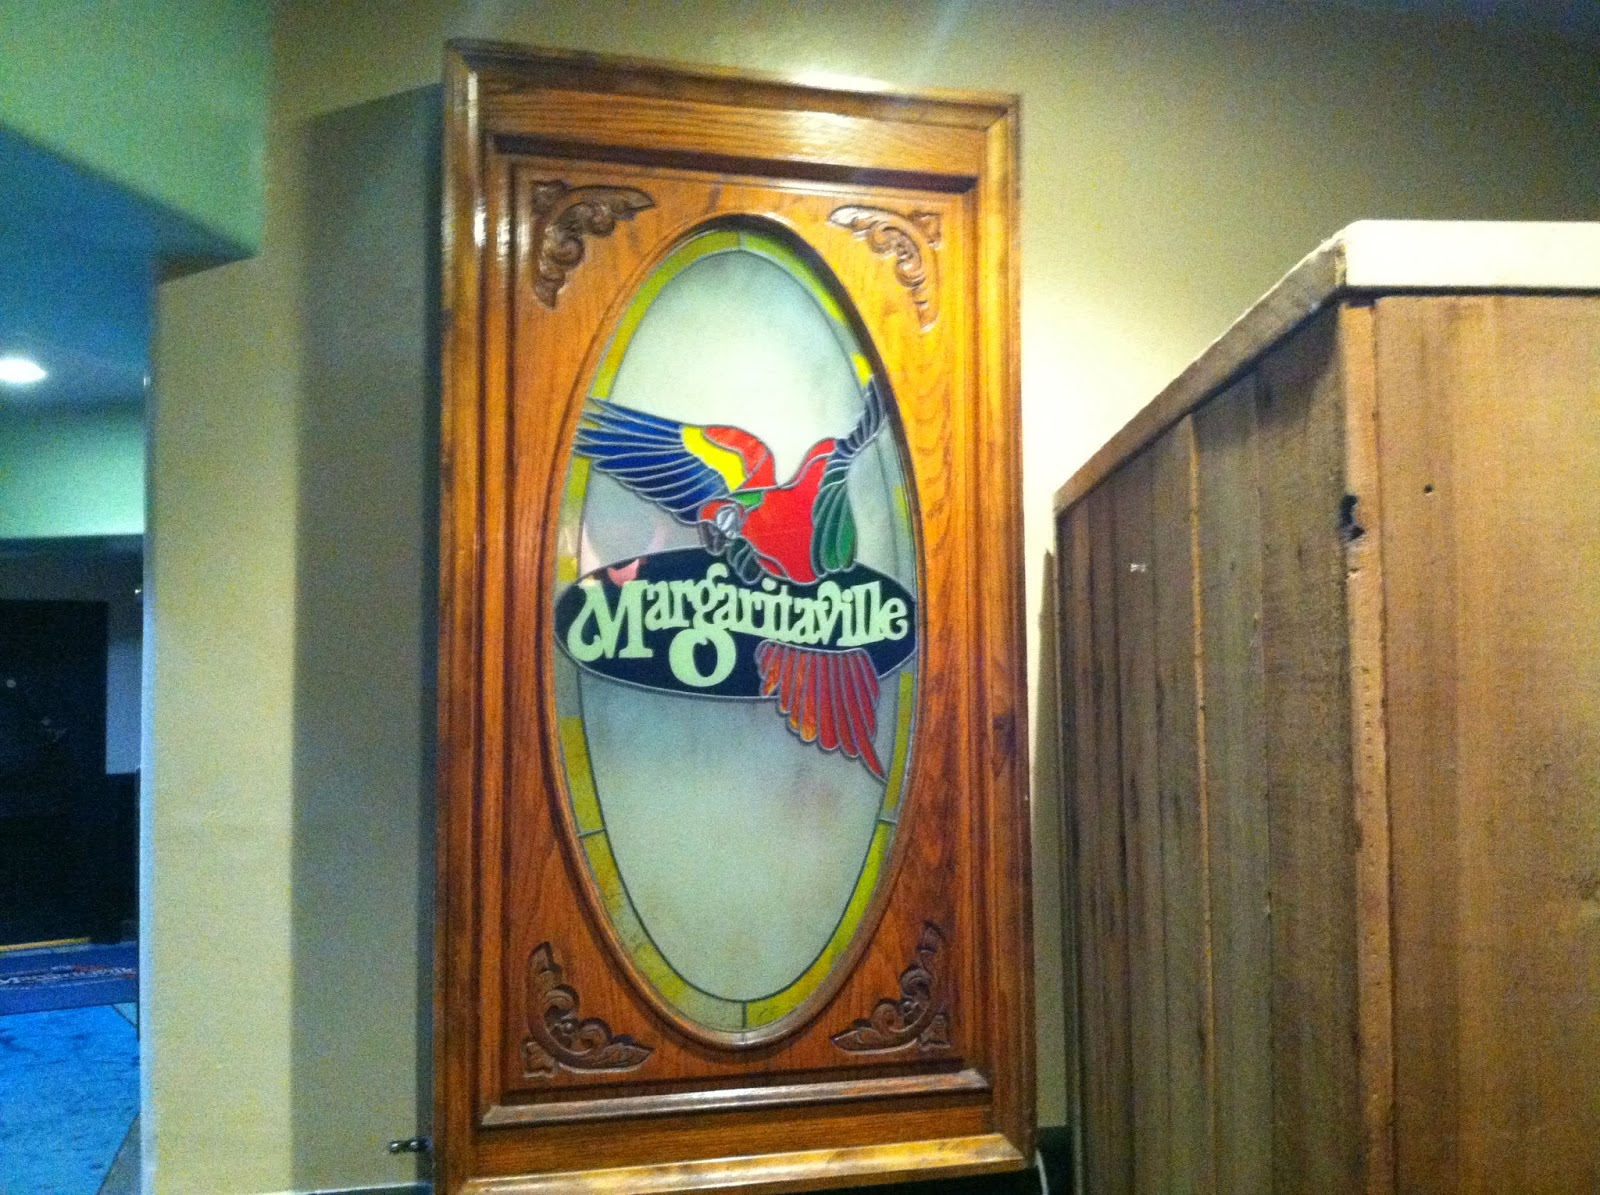 The Santa Cruz Food Blog: Margaritaville